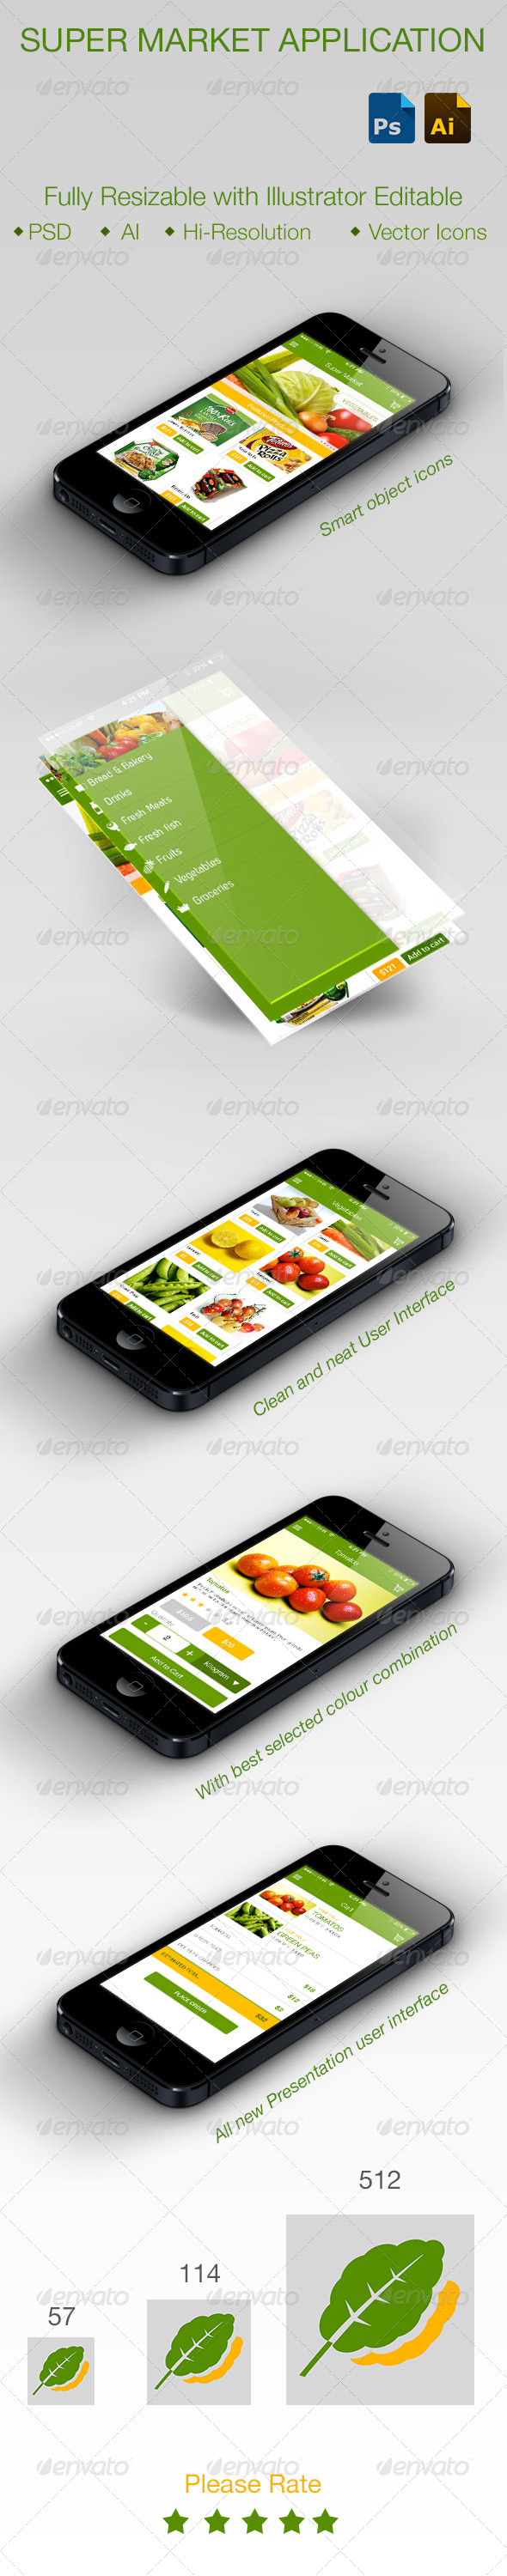 GraphicRiver Online Super Market Application for Smartphones 5729631